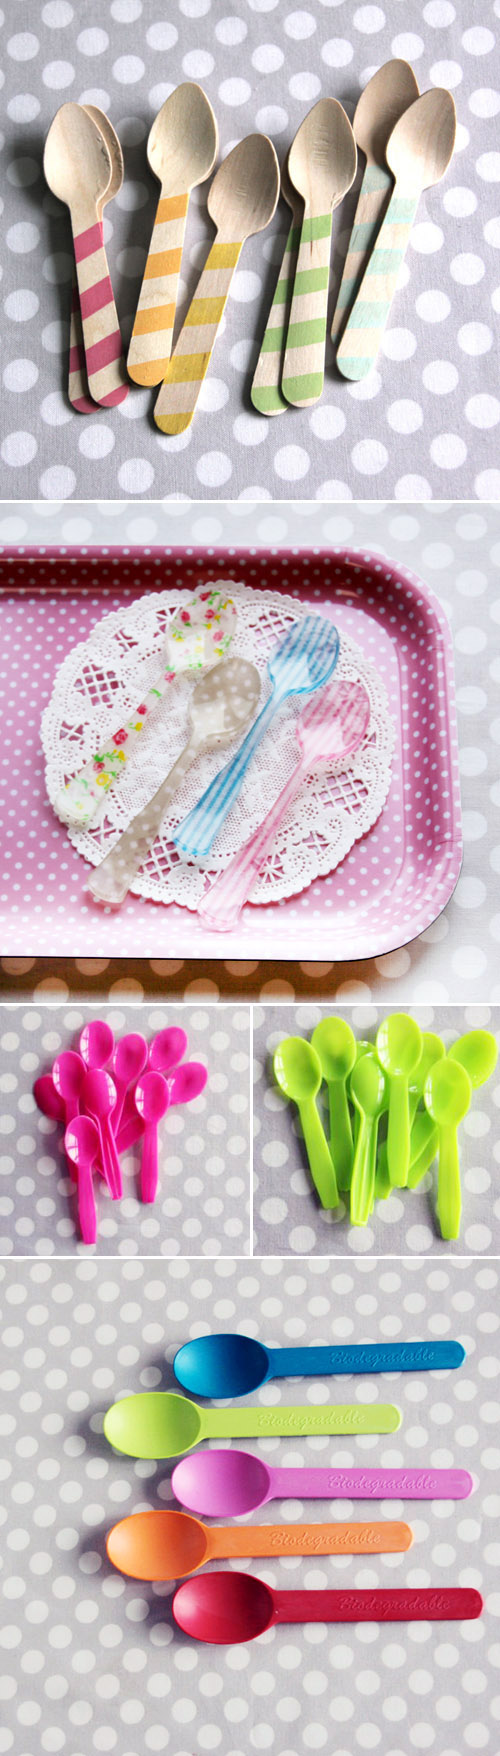 colorful wooden or plastic disposable silverware and vintage style wedding decor and party supplies from Shop Sweet Lulu